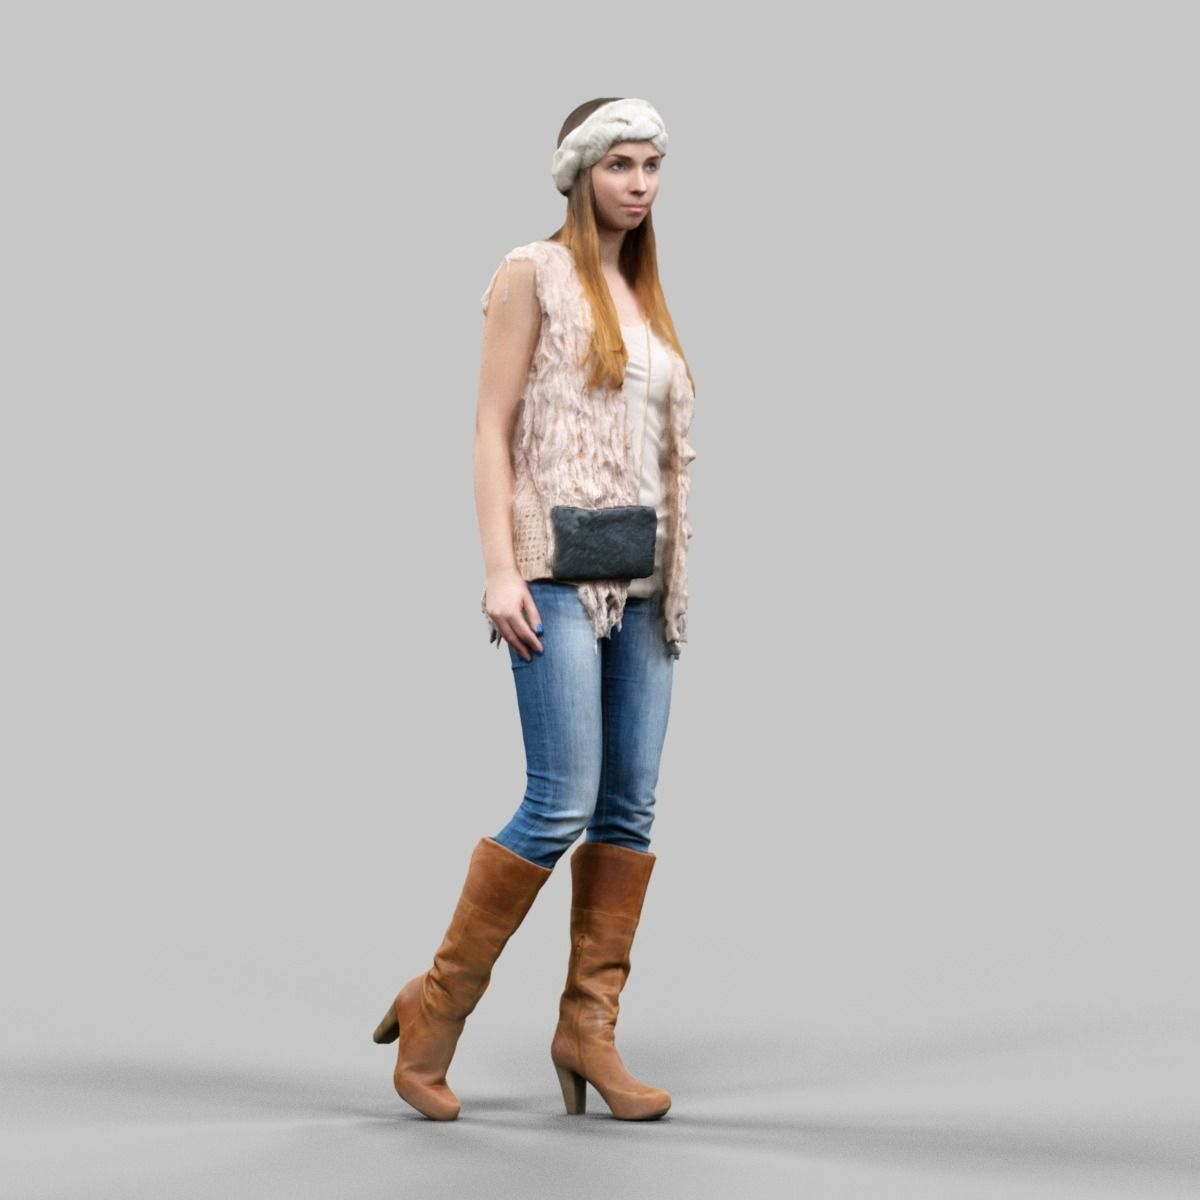 3d Model Girl In Fluffy Cardigan Jeans And Boots Vr Ar